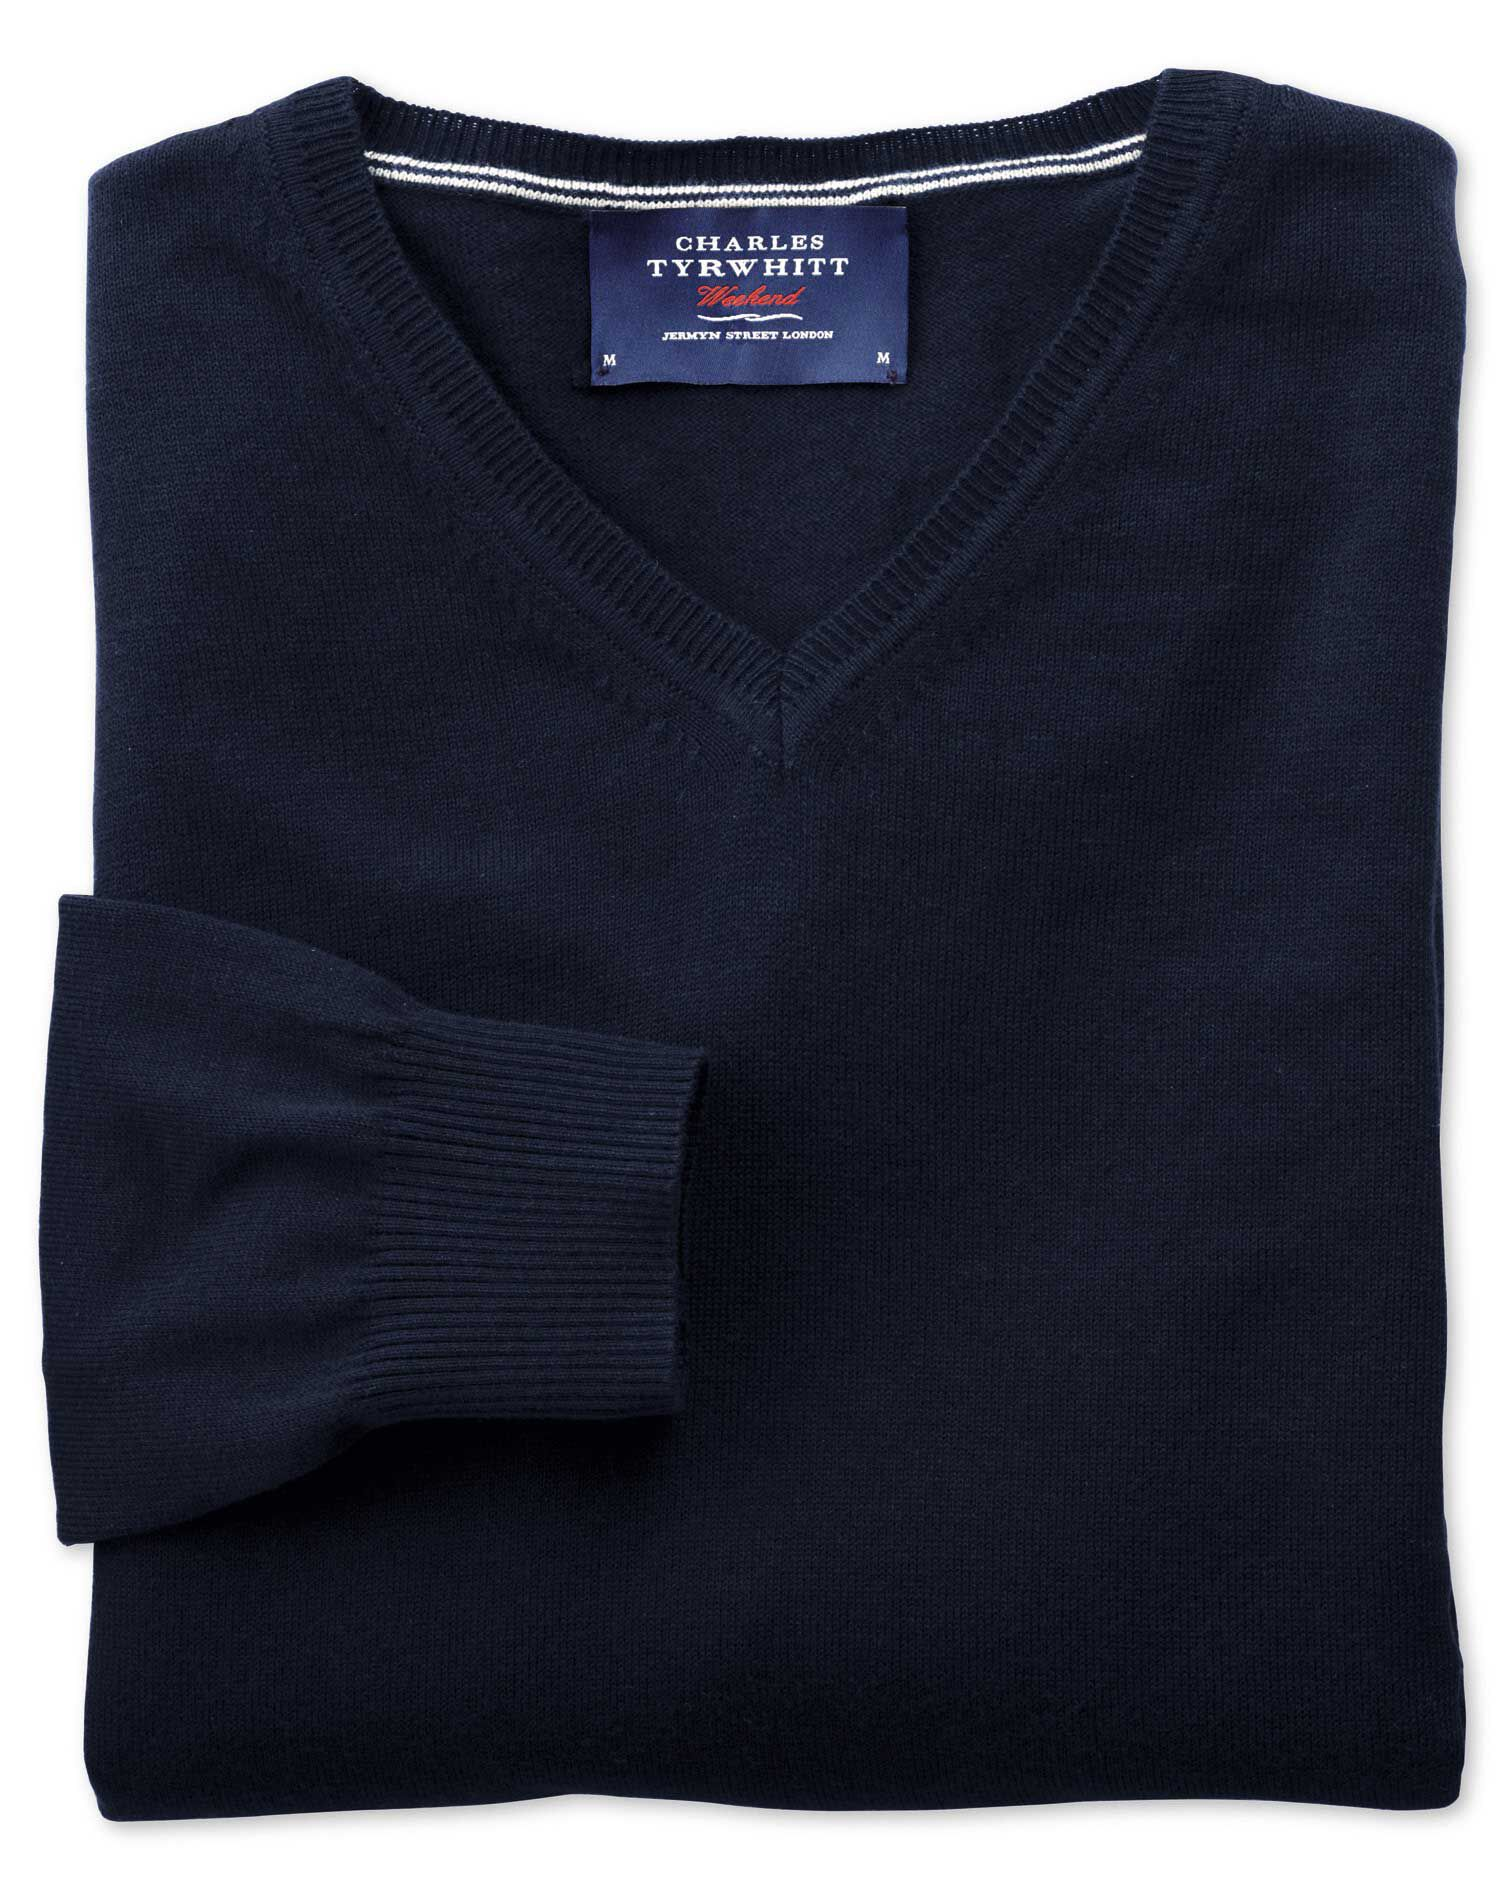 Navy Cotton Cashmere V-Neck Jumper Size Large by Charles Tyrwhitt